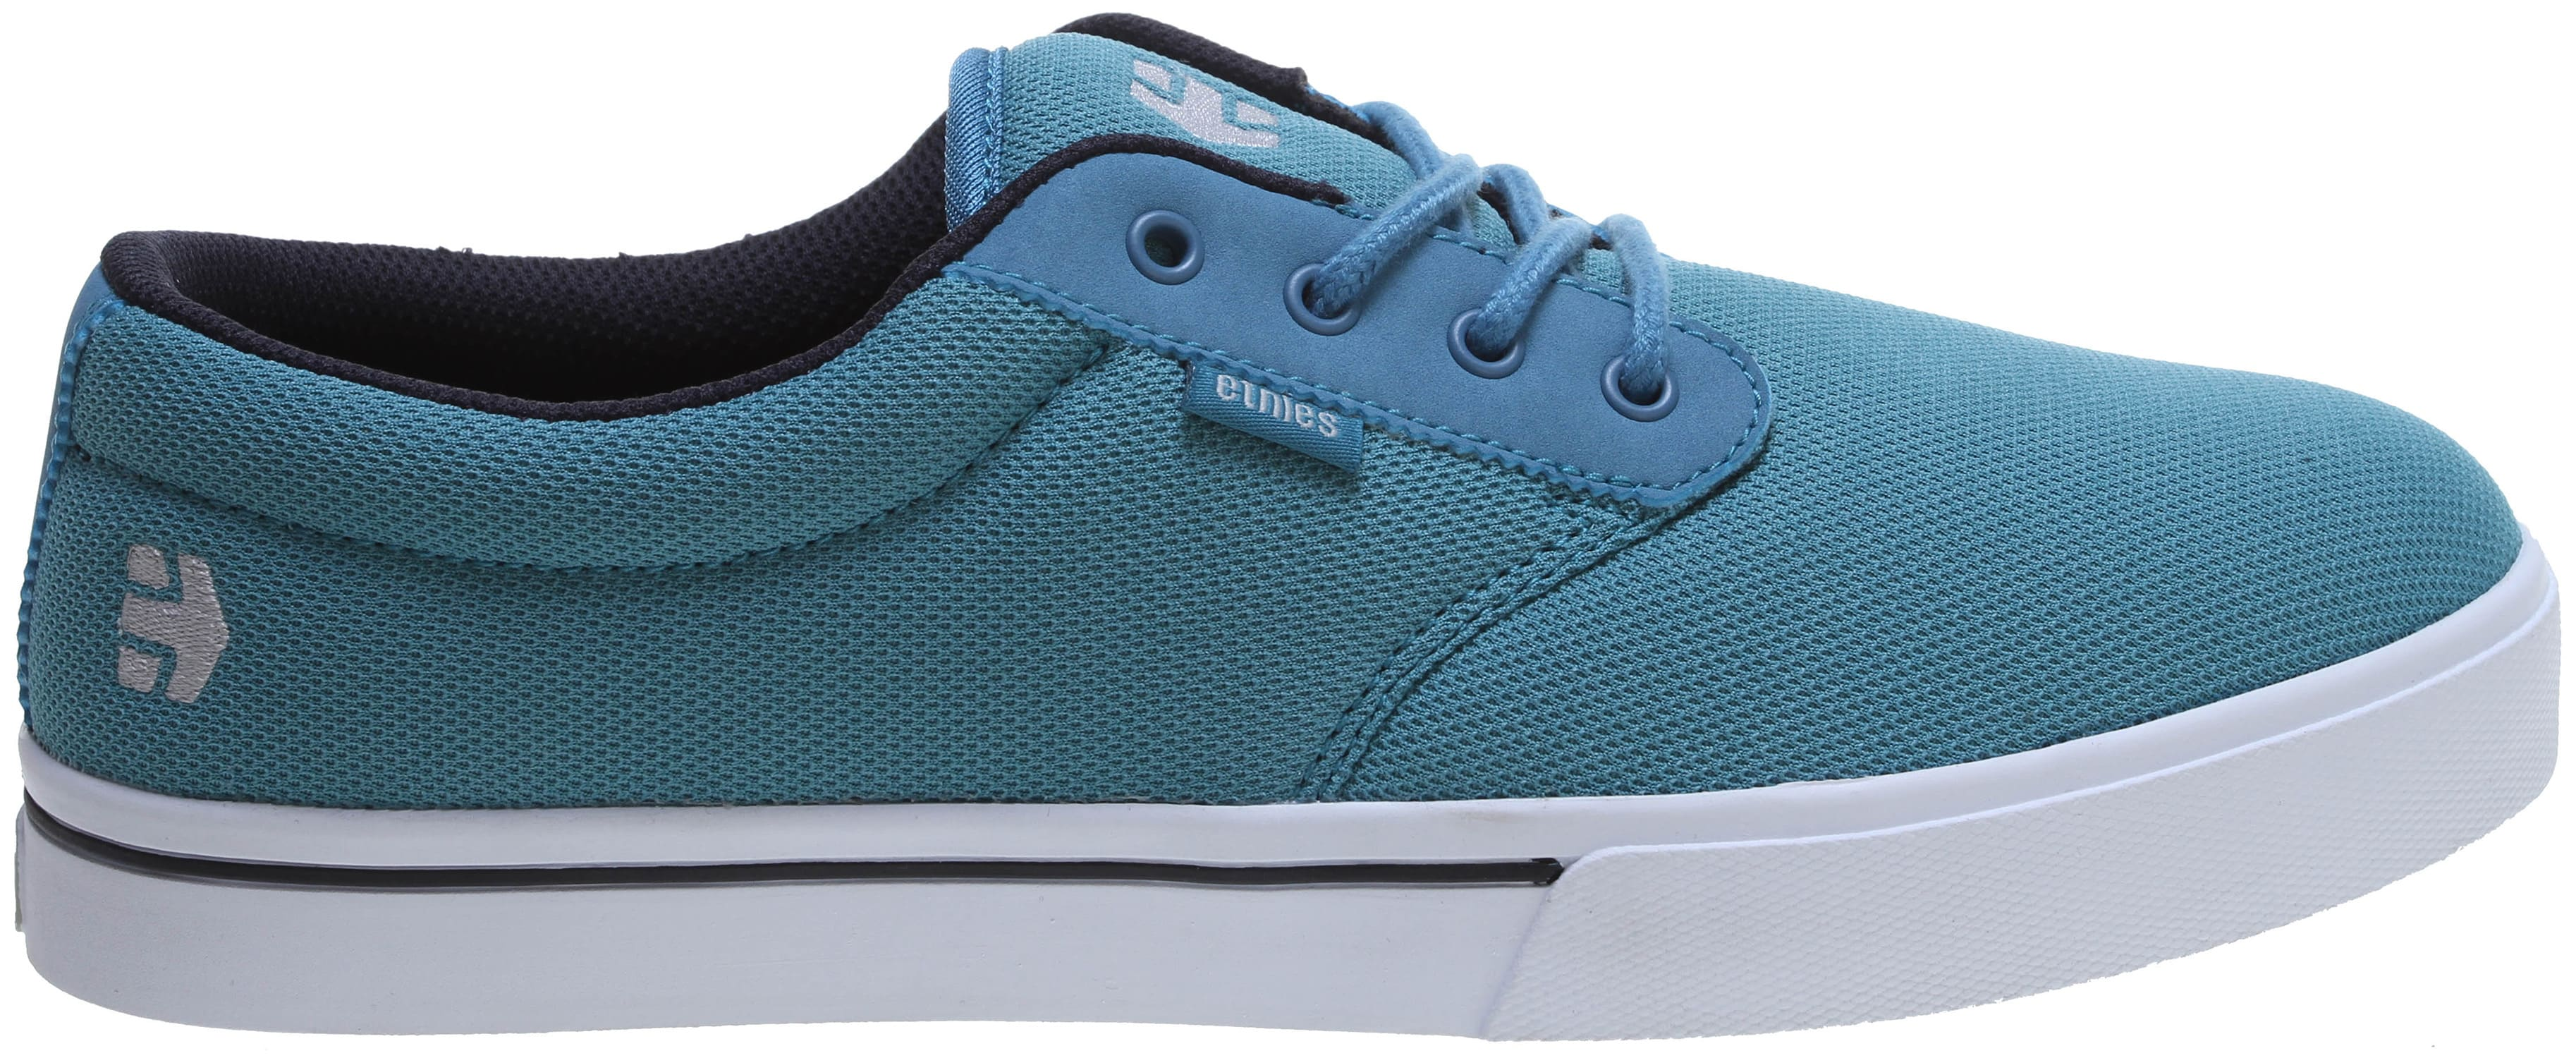 Best Etnies Skate Shoes